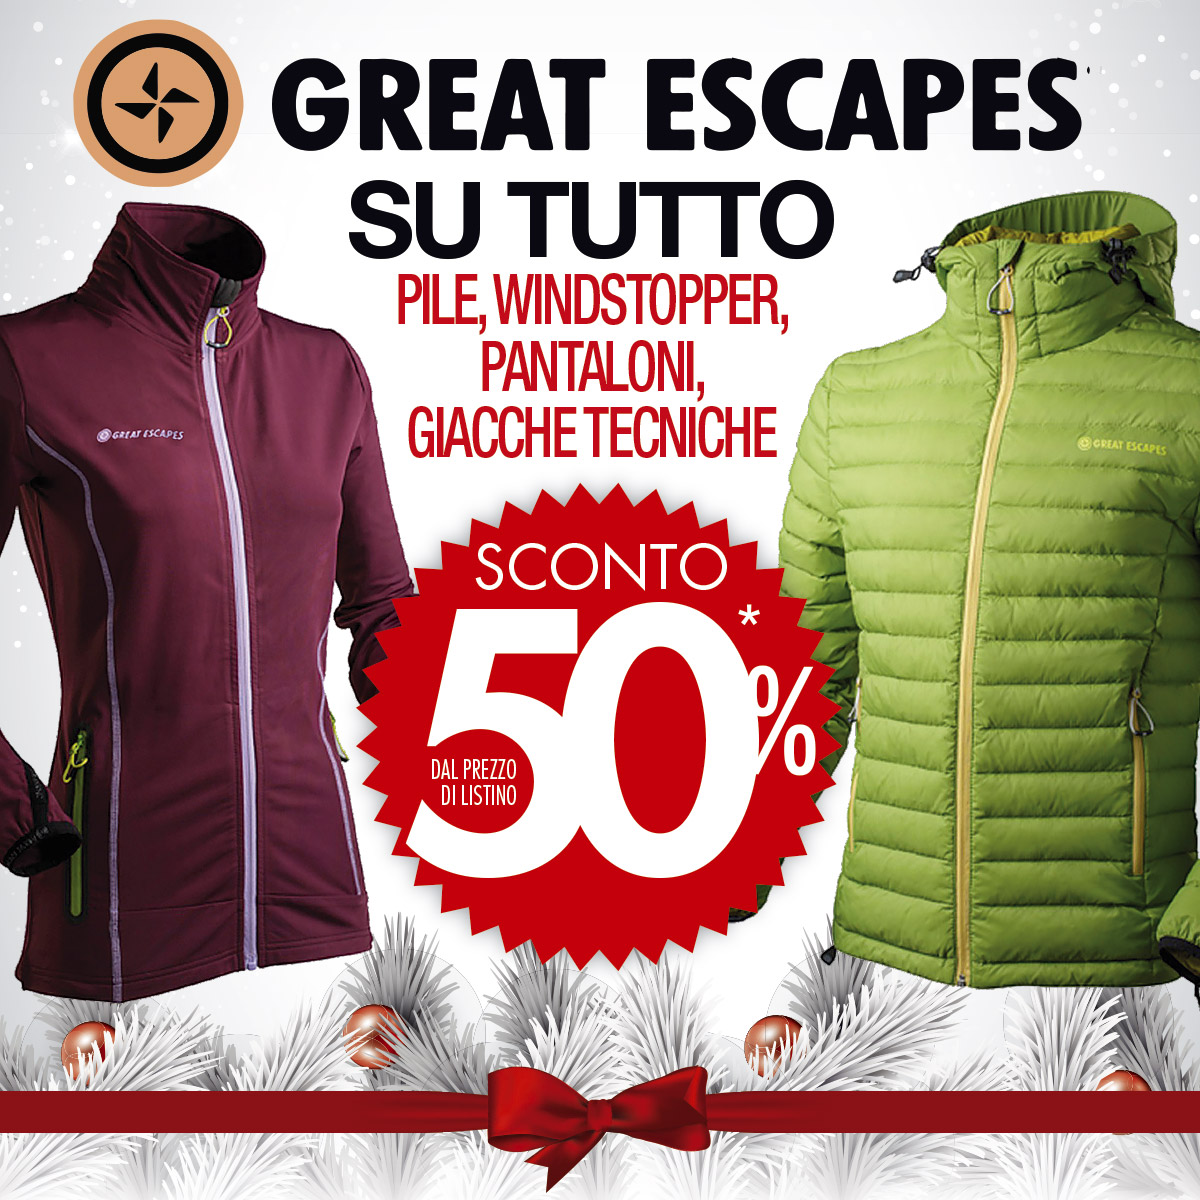 Promo-BORGO-GREATESCAPES_Sconto50_BannerNewsletter